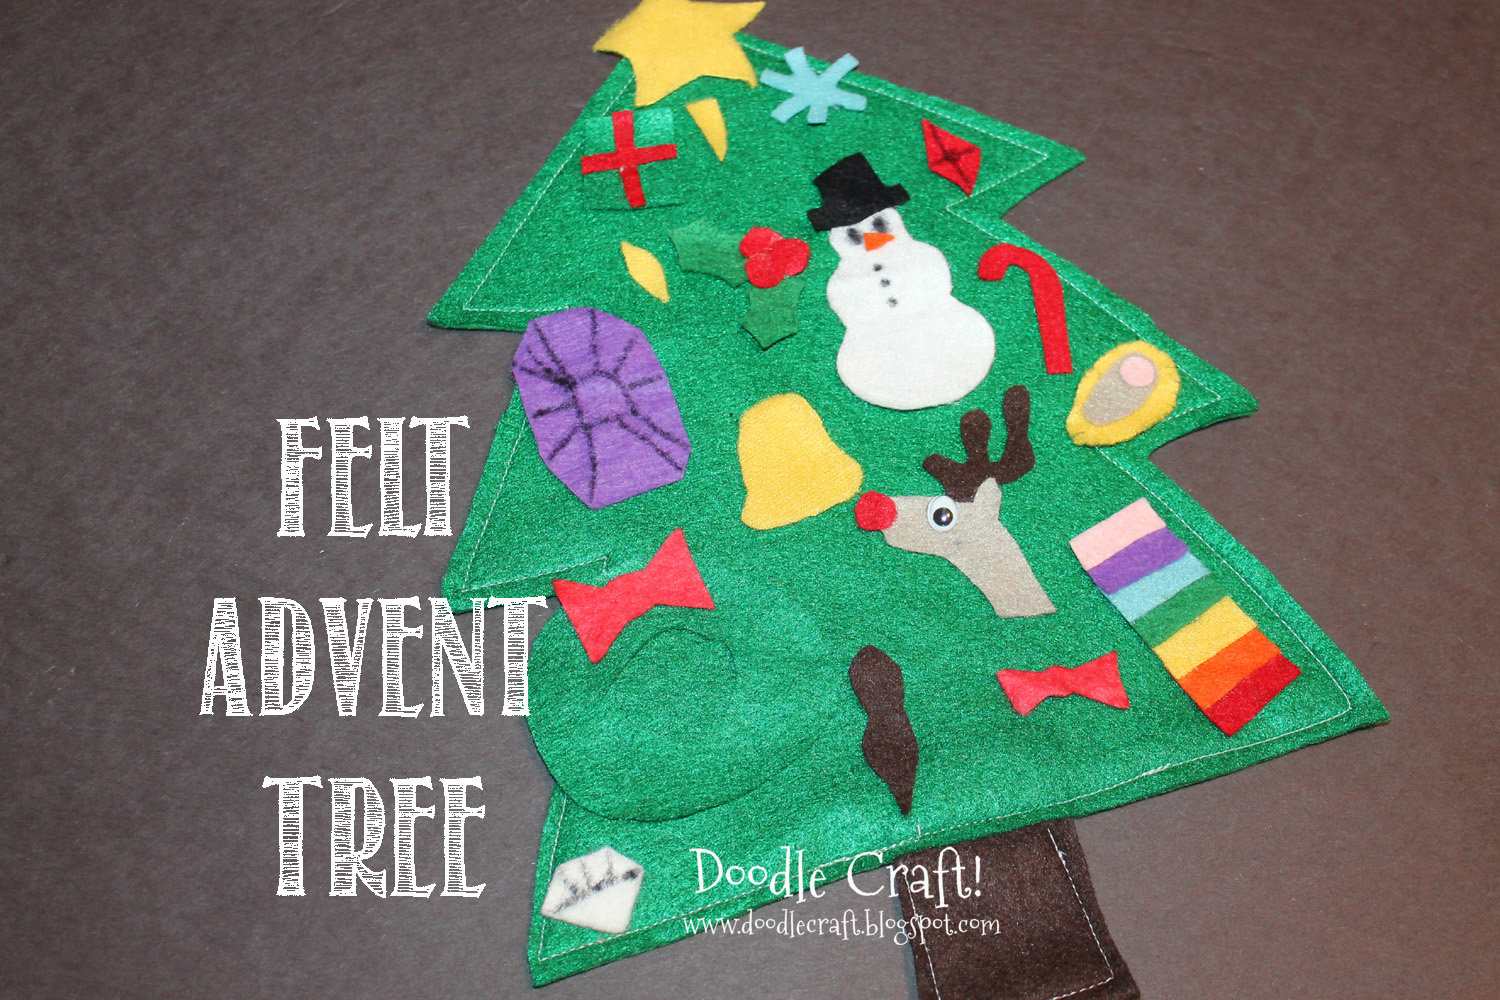 Doodle Craft...: Christmas in July: Felt Advent Calendar!